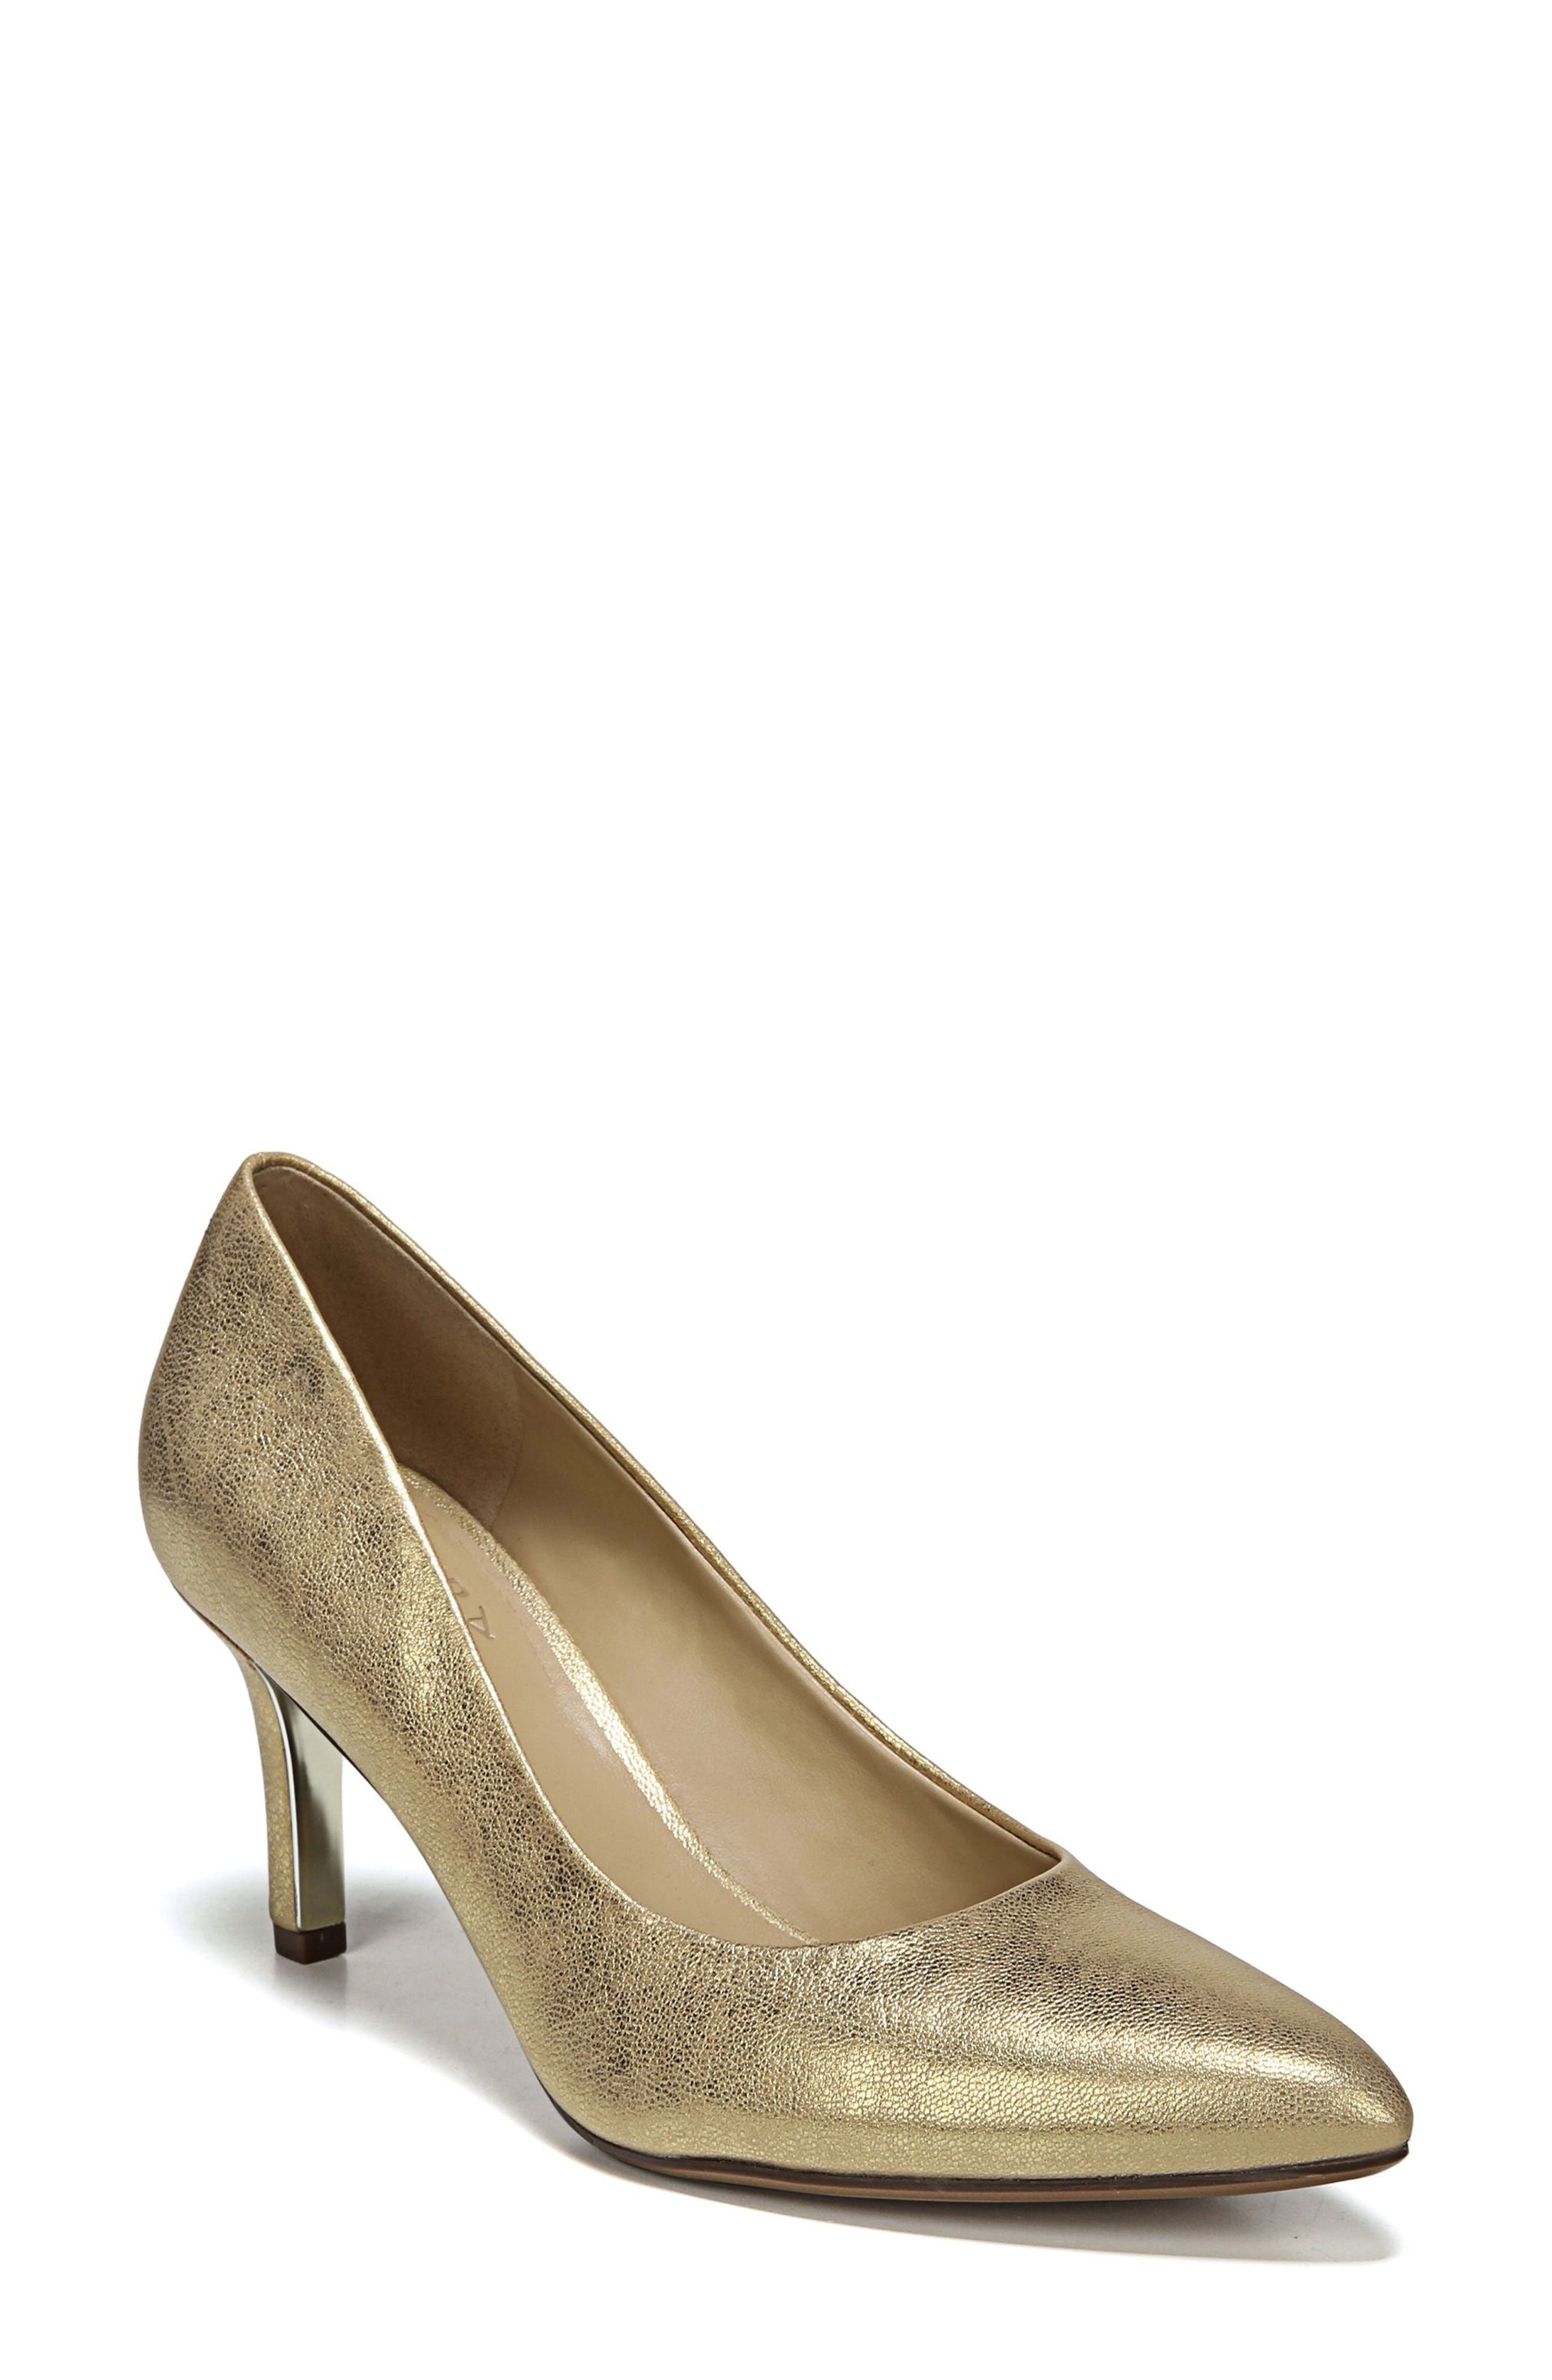 Natalie Pointy Toe Pump,                             Alternate thumbnail 8, color,                             GOLD LEATHER